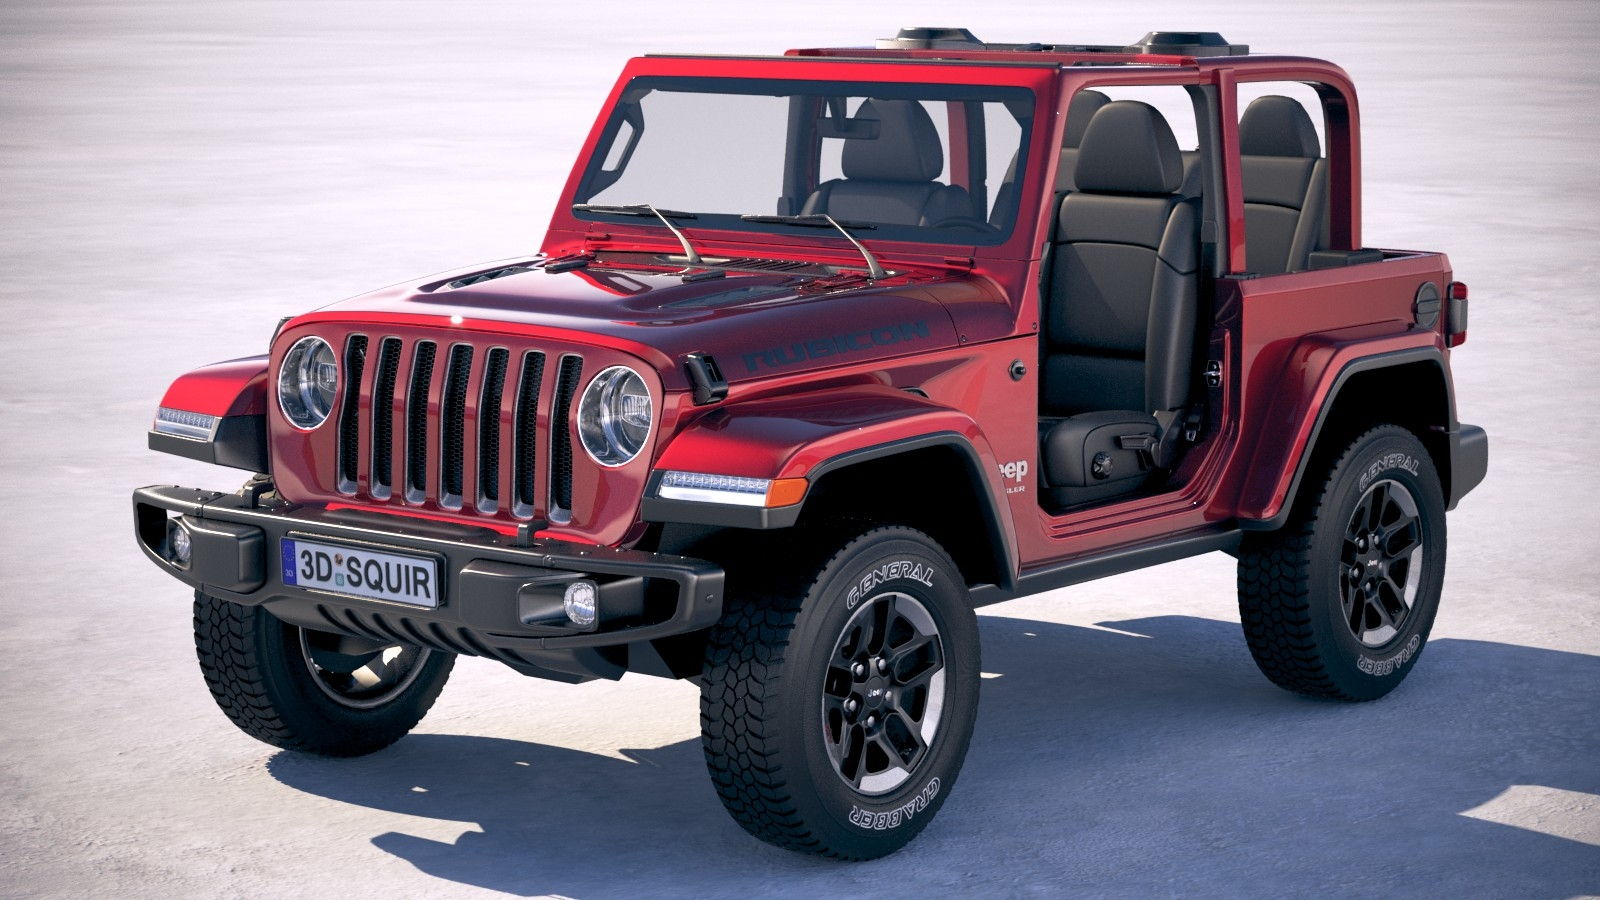 Image result for jeep wrangler rubicon image